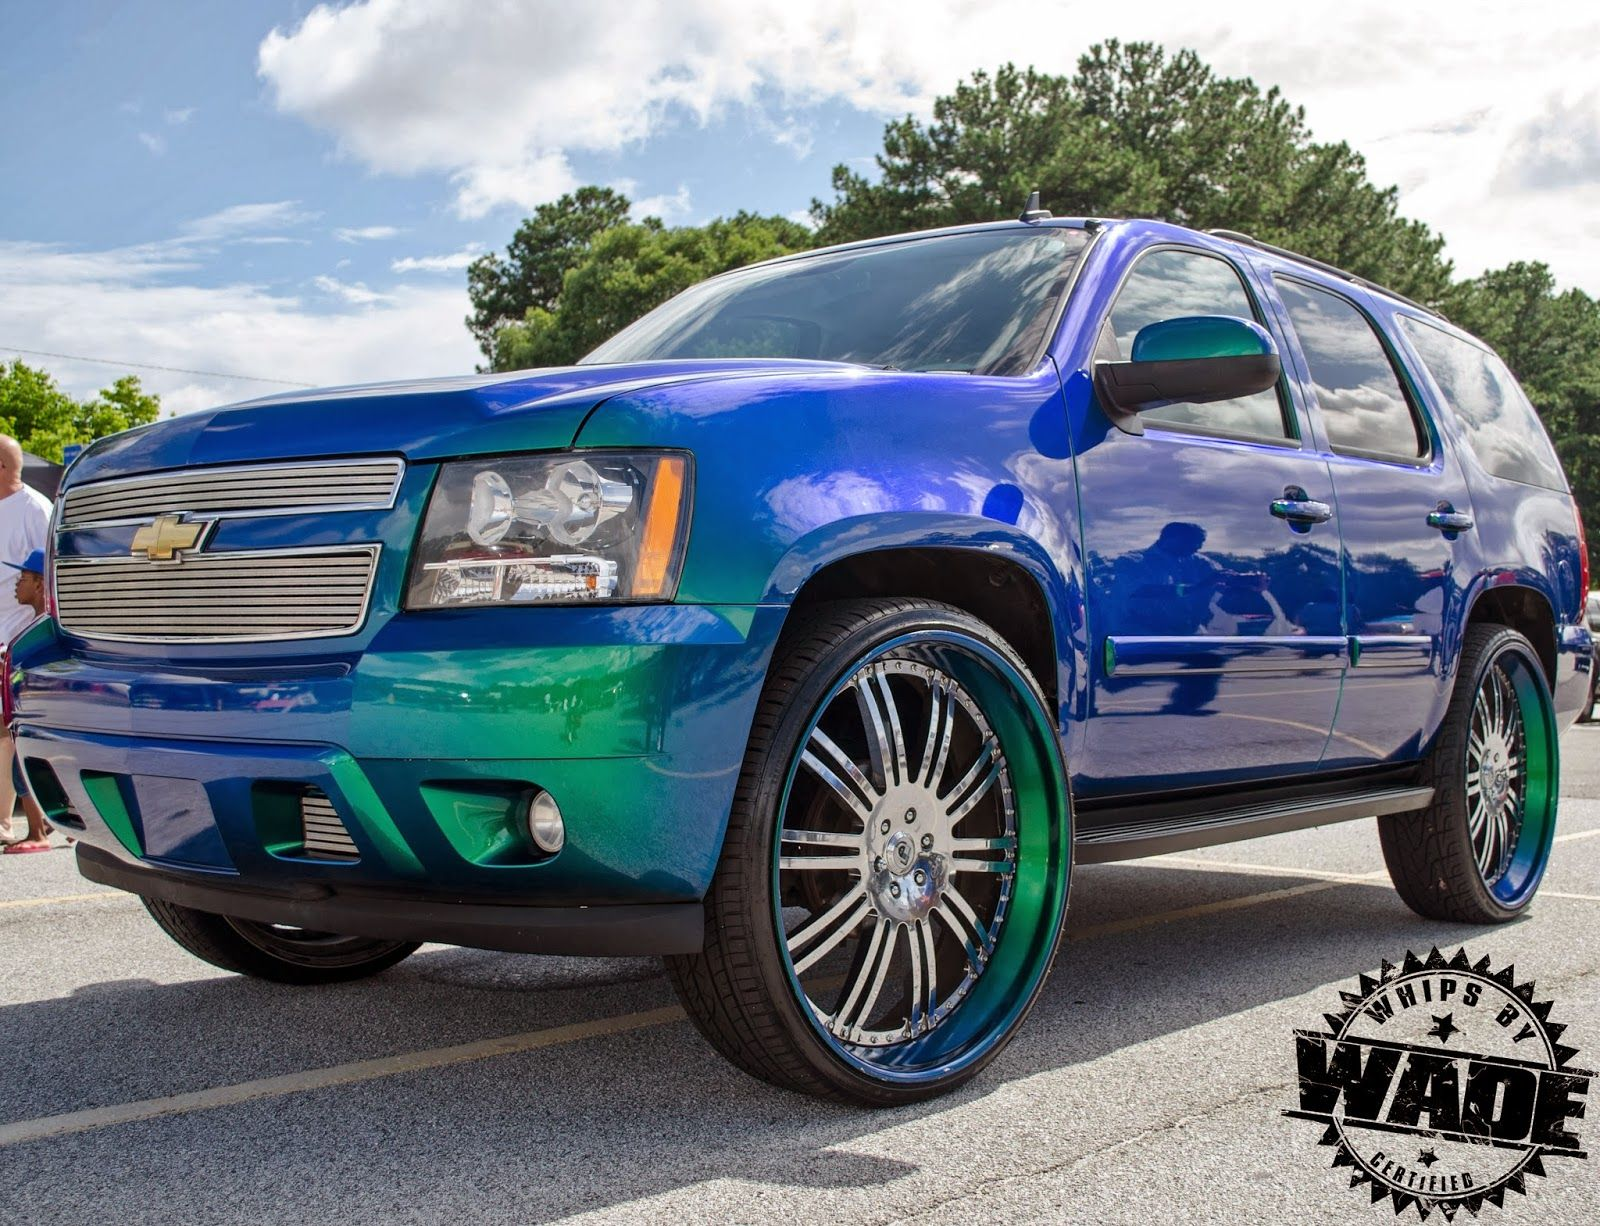 Whips by wade ourageous painted chevrolet tahoe on 30 asanti wheels